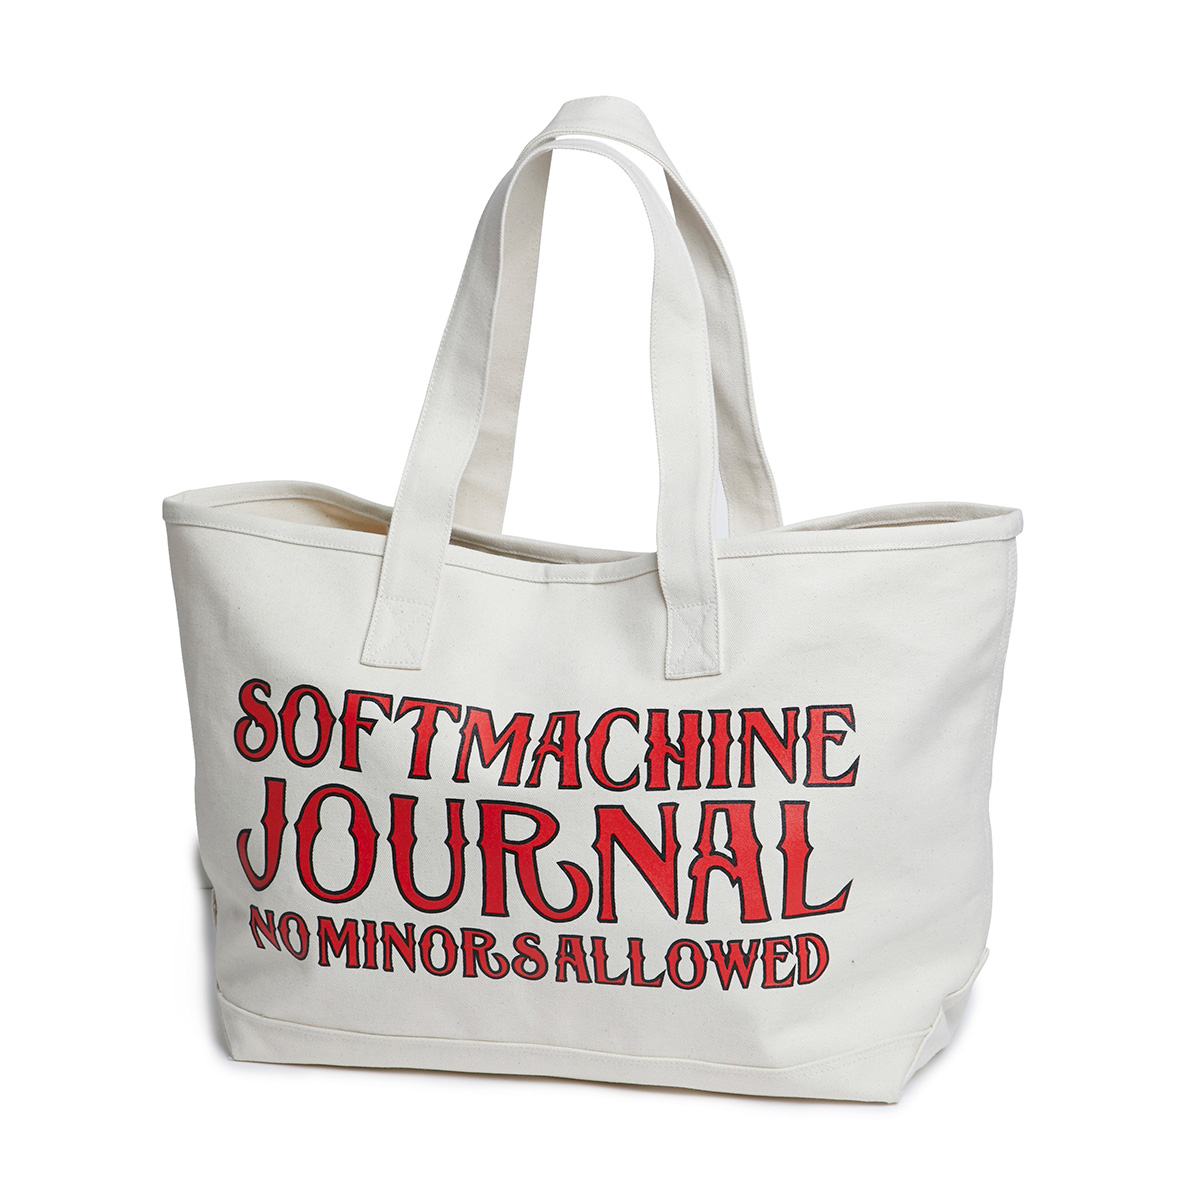 SM JOURNAL TOTE BAG